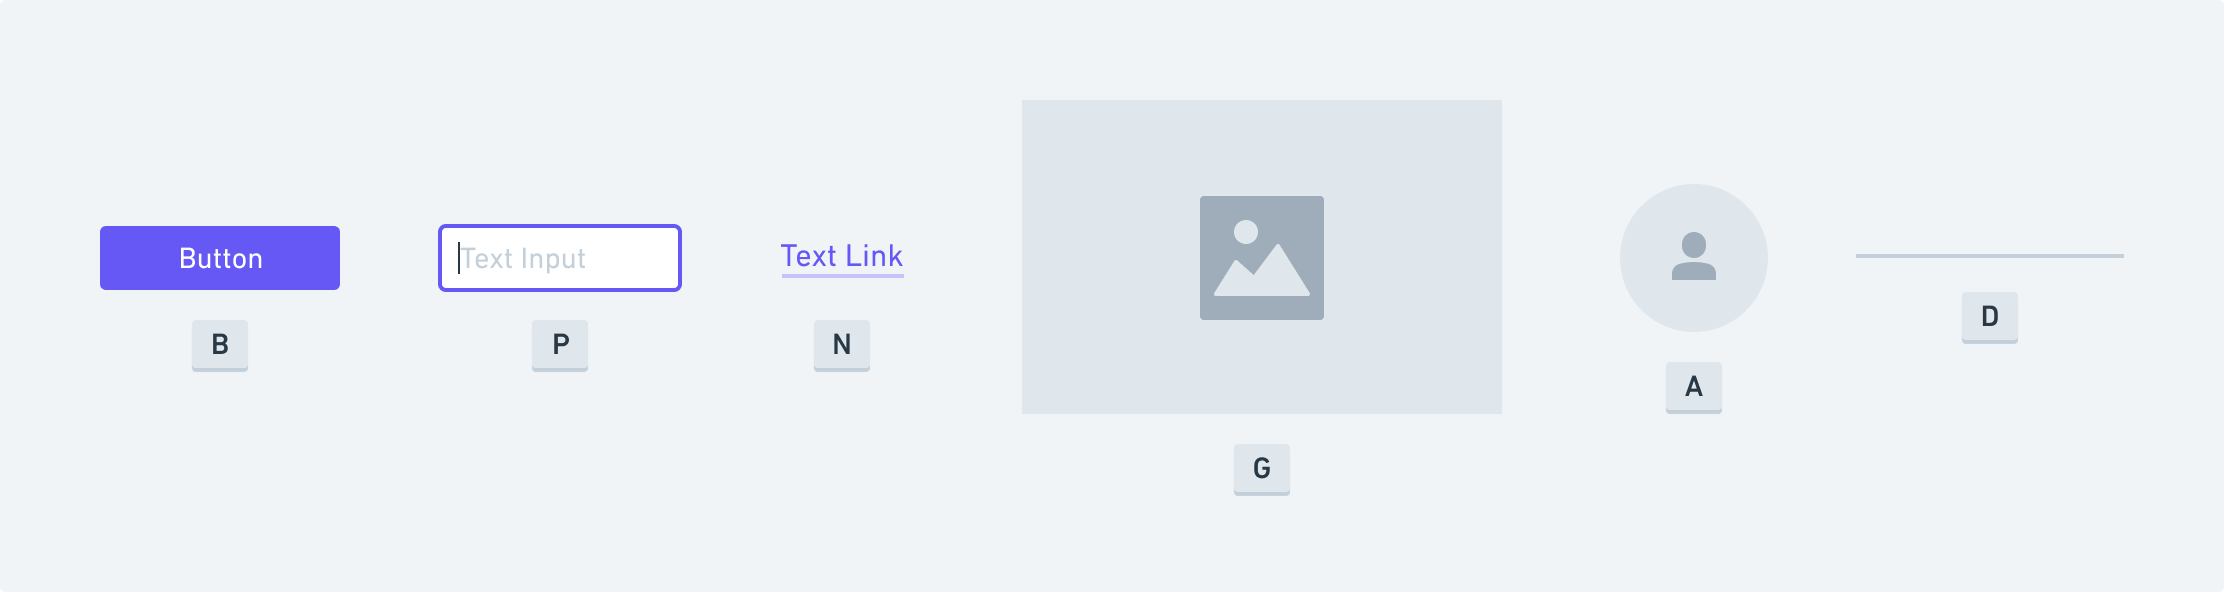 Wireframe-specific shortcuts for elements like buttons, text inputs, images, and more